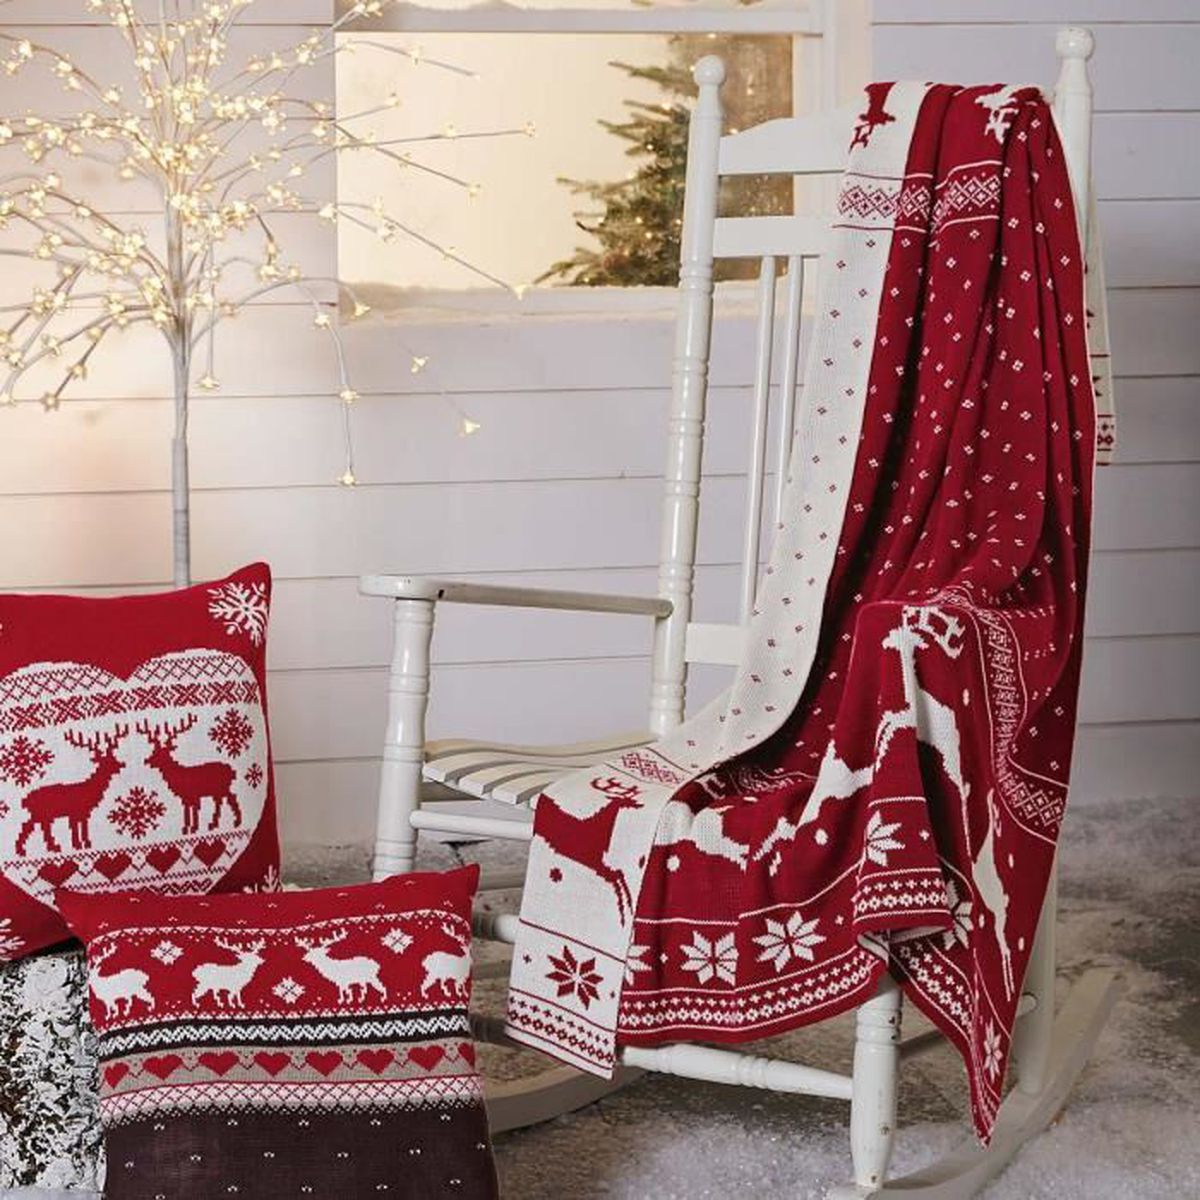 pureday plaid de no l avec des motifs de cerfs blanc et rouge achat vente couverture plaid. Black Bedroom Furniture Sets. Home Design Ideas